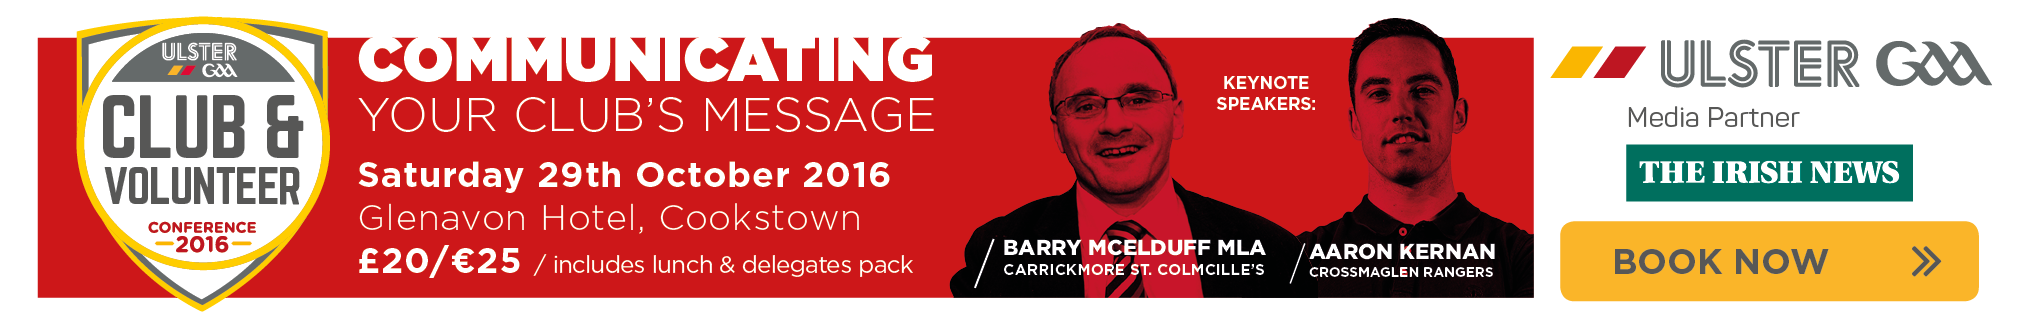 ulster-conferences-2016-web-banner